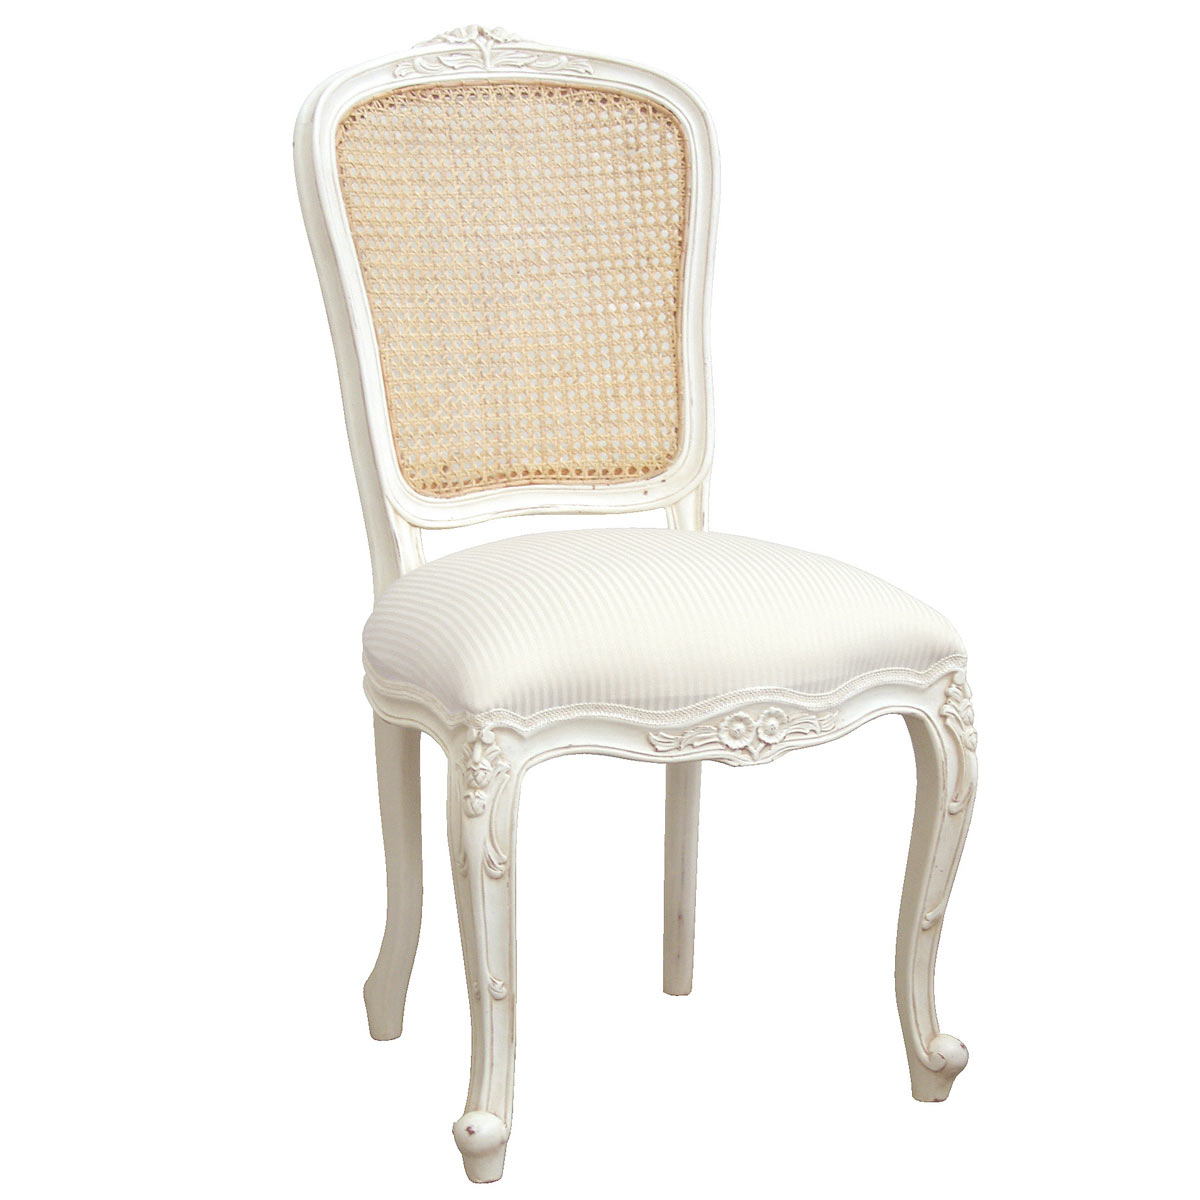 French Chairs Provencal White Rattan French Chair French Bedroom Company